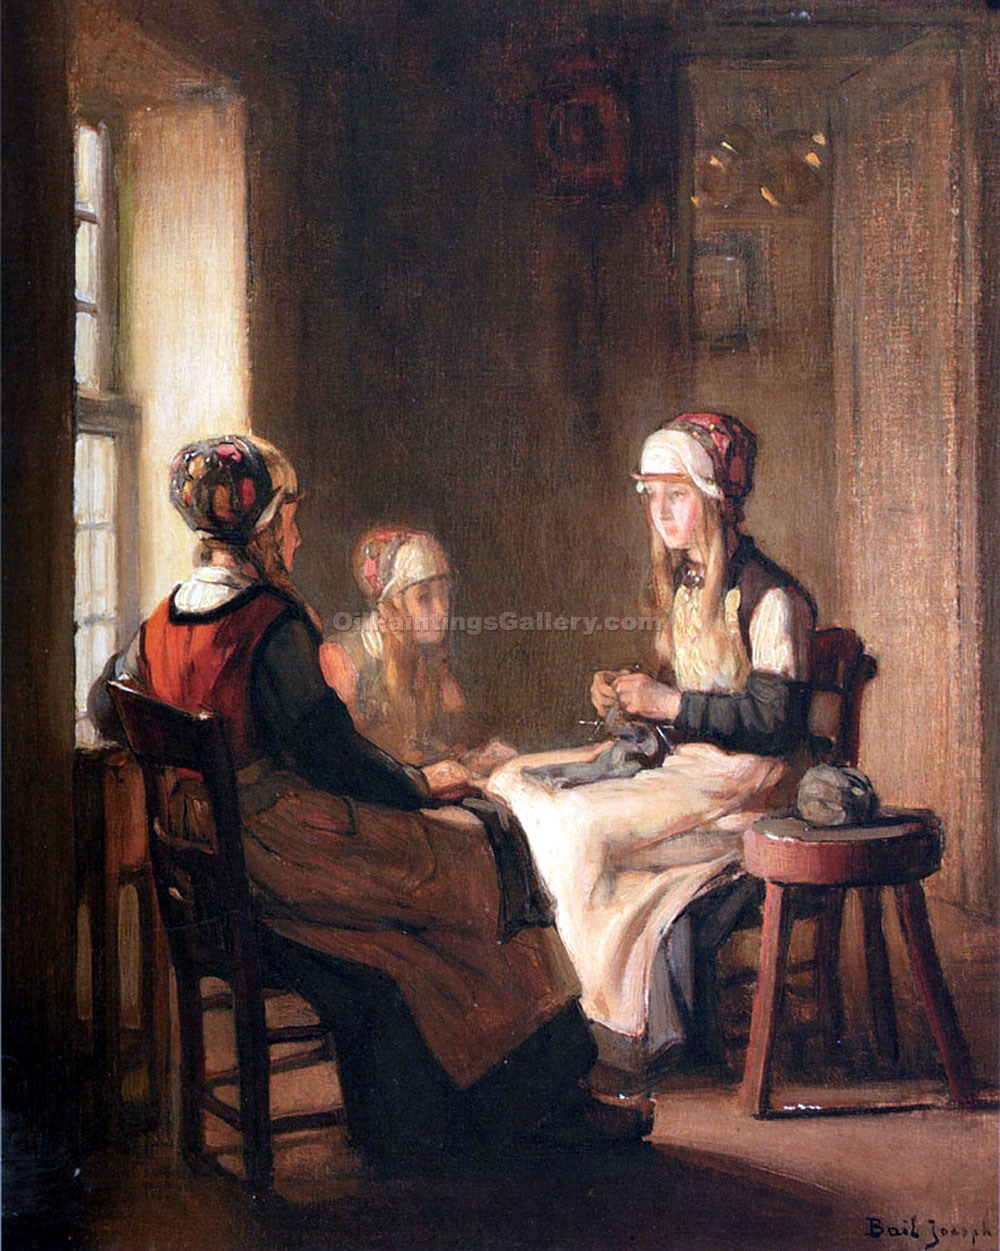 Interior with Marken Girls Knitting by Claude JosephBail | Abstract Oil Paintings - Oil Paintings Gallery